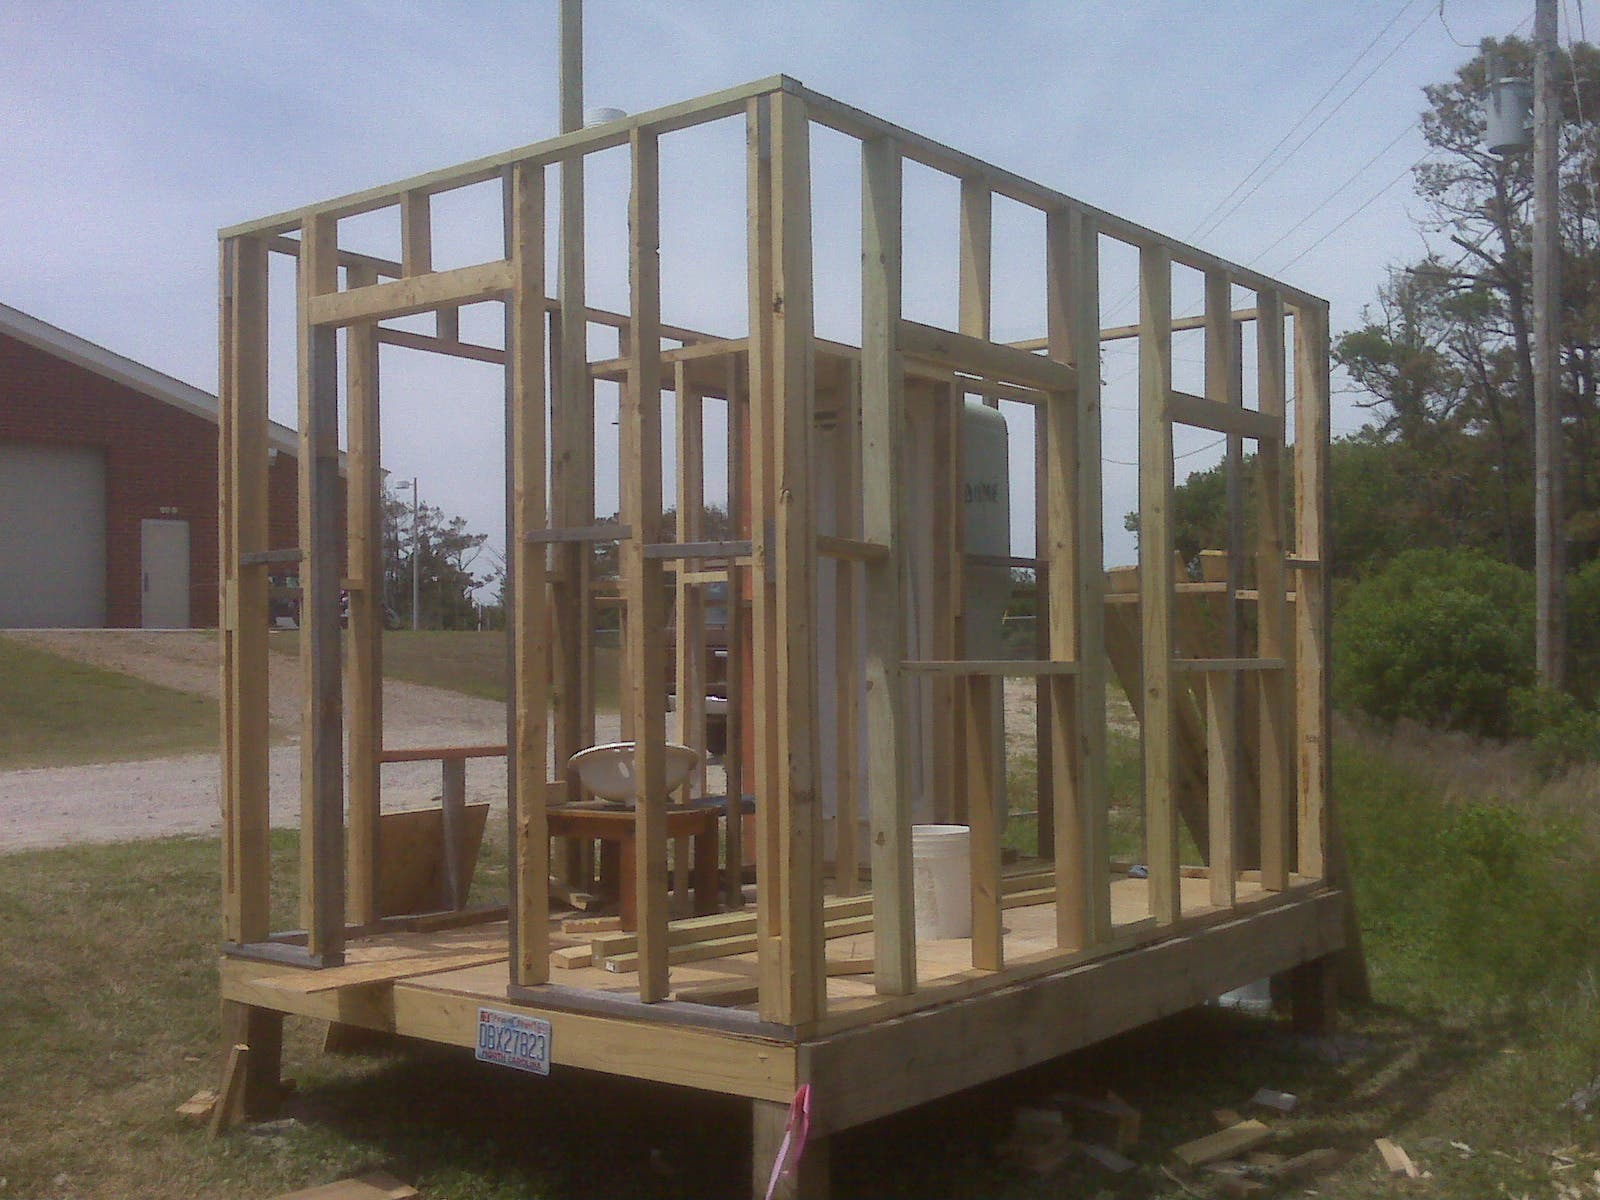 Build a house school project